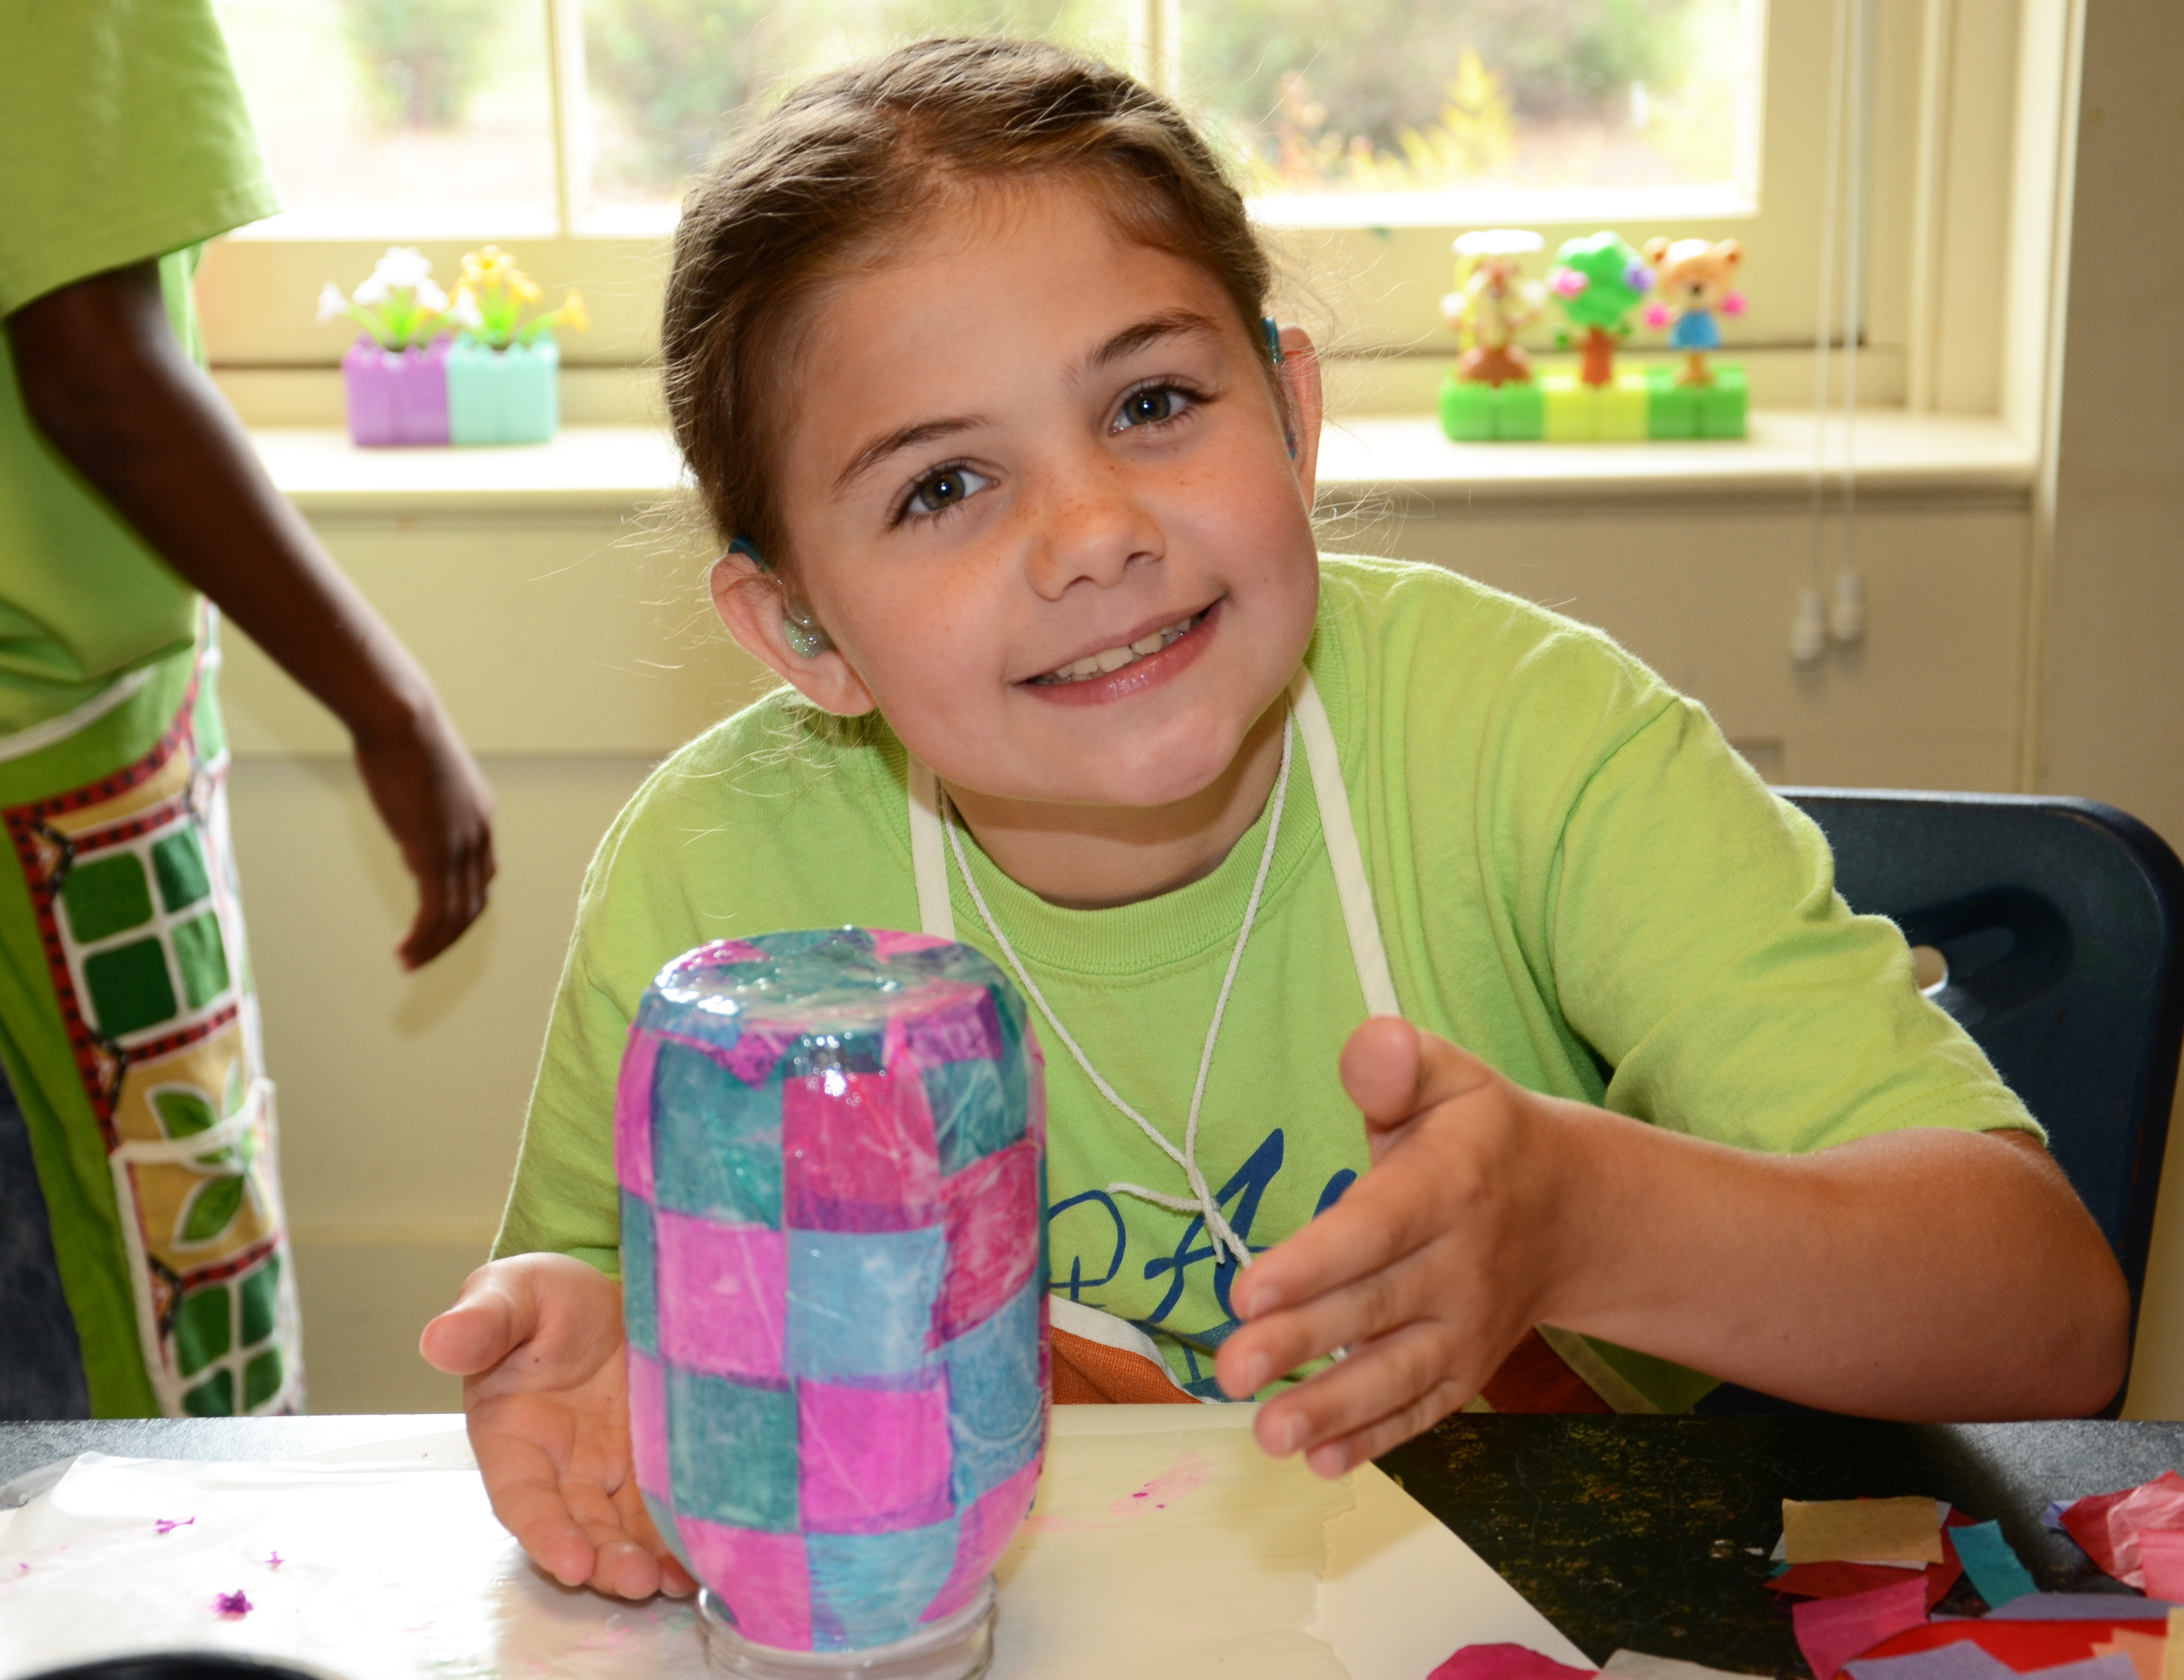 Campers made lanterns during art sessions.